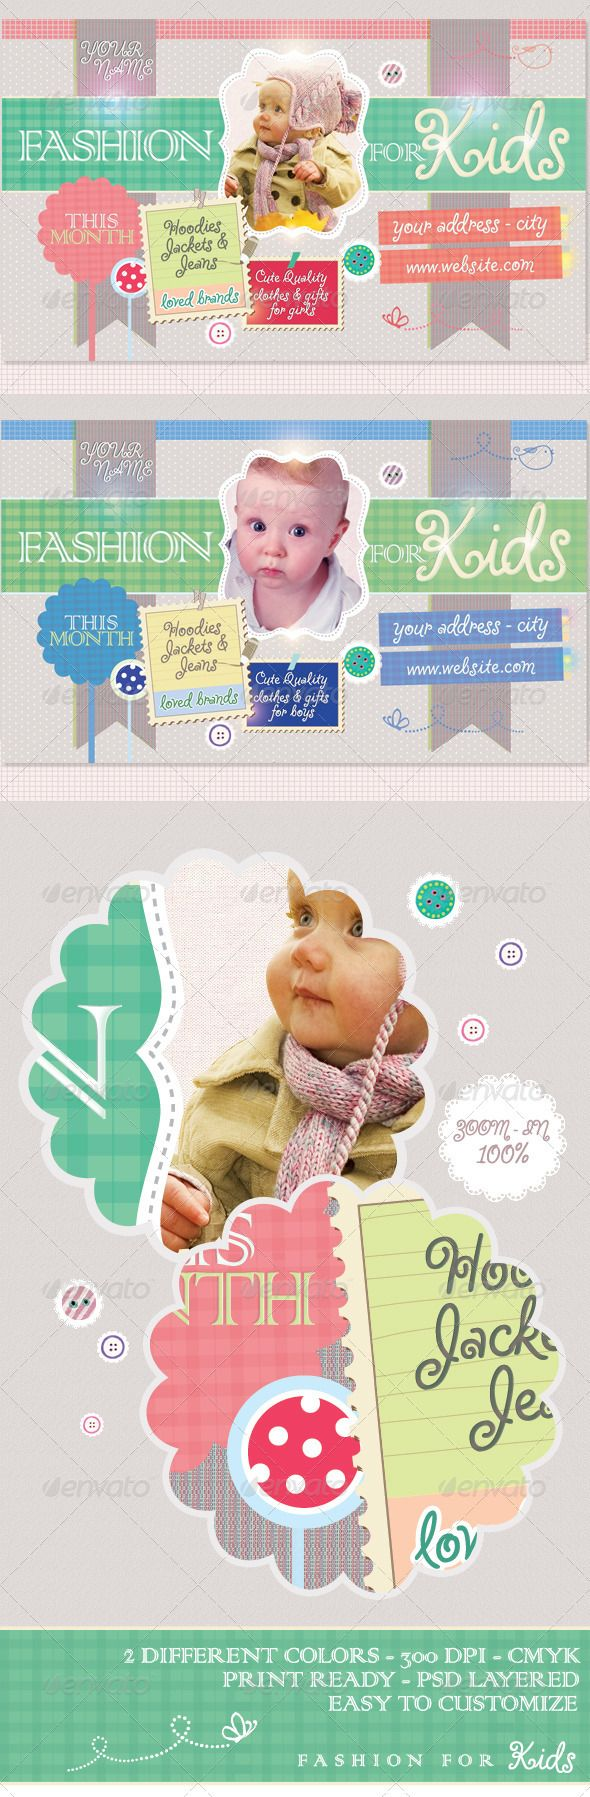 Fashion for kids flyer template 6 this flyer is perfect for fashion for kids flyer template 6 this flyer is perfect for the promotion of childrens clothing store baby shops childrens partybirthday or any maxwellsz